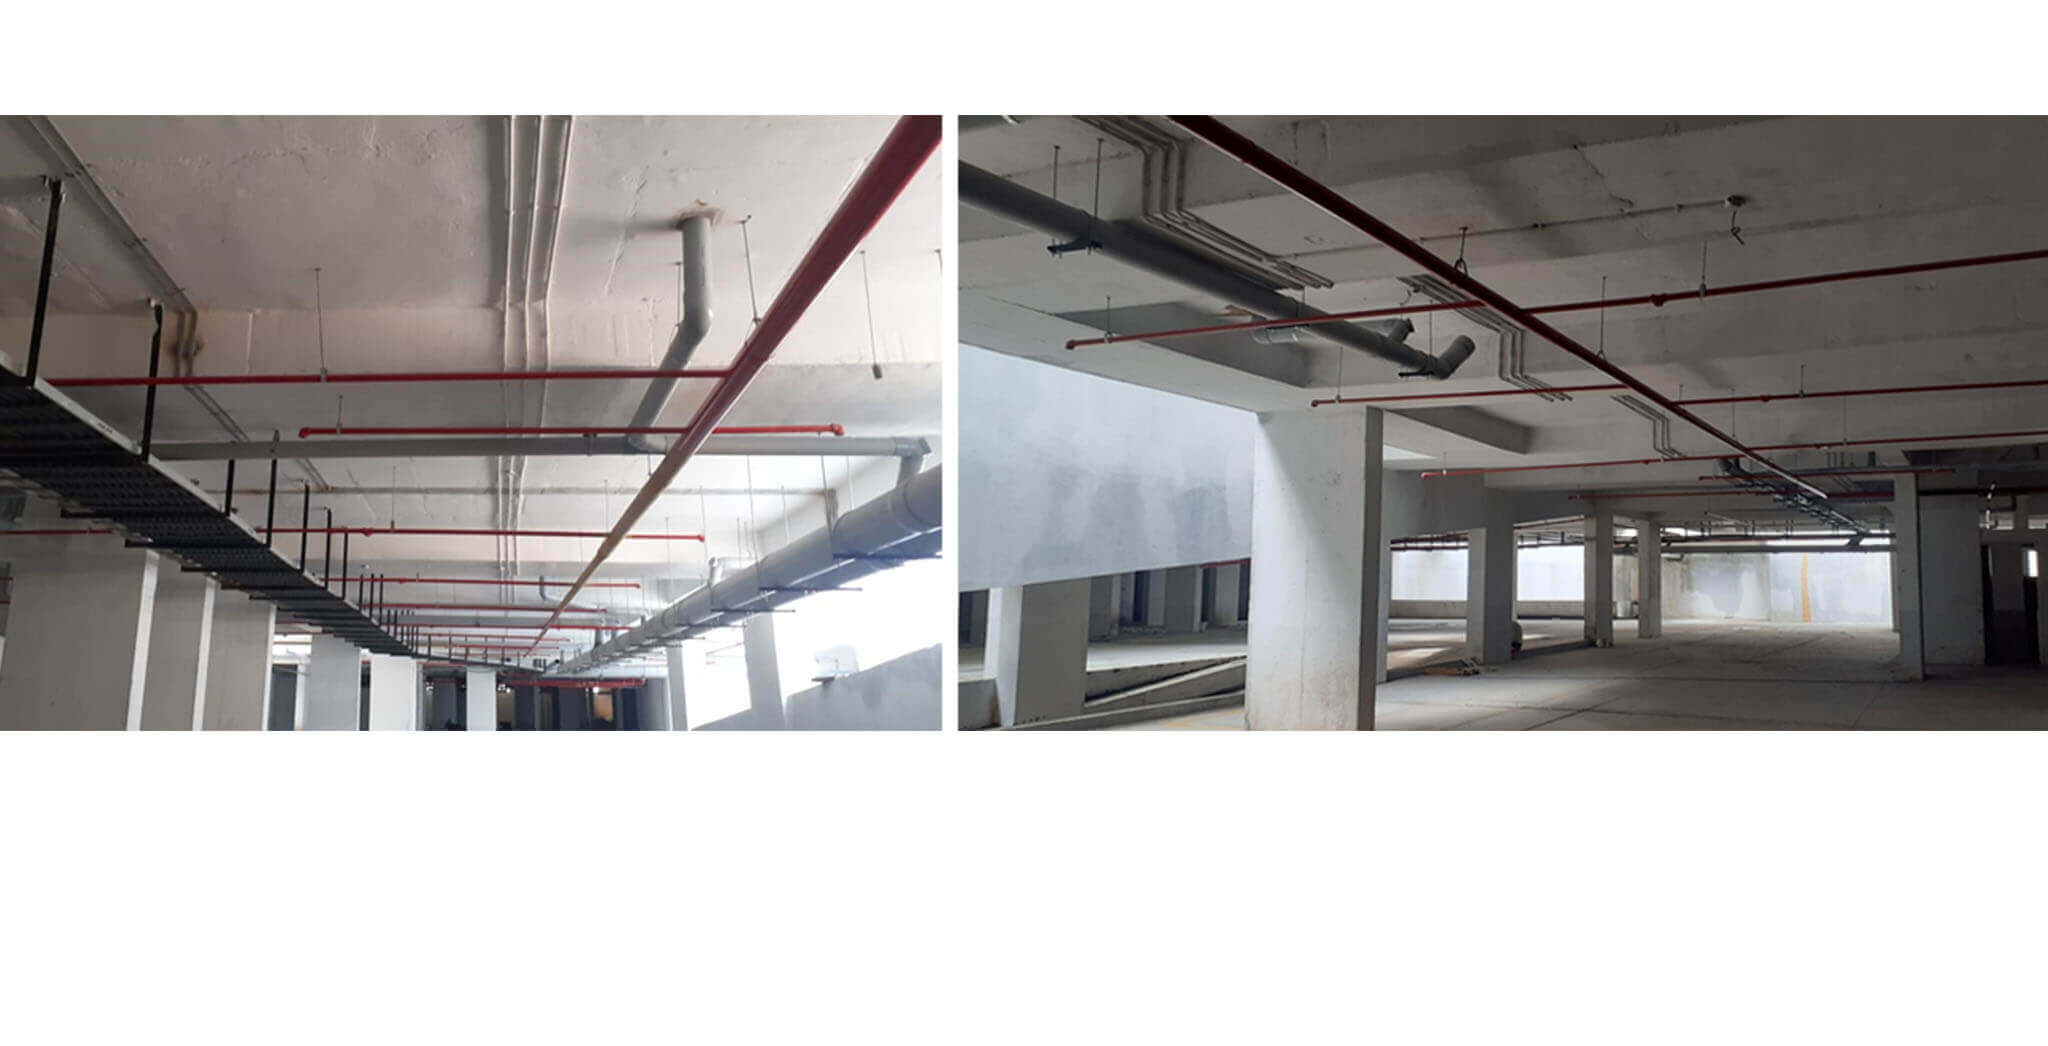 Sep 2020 - Basement: Fire fighting sprinkler lines, plumbing and electrical cable tray work completed